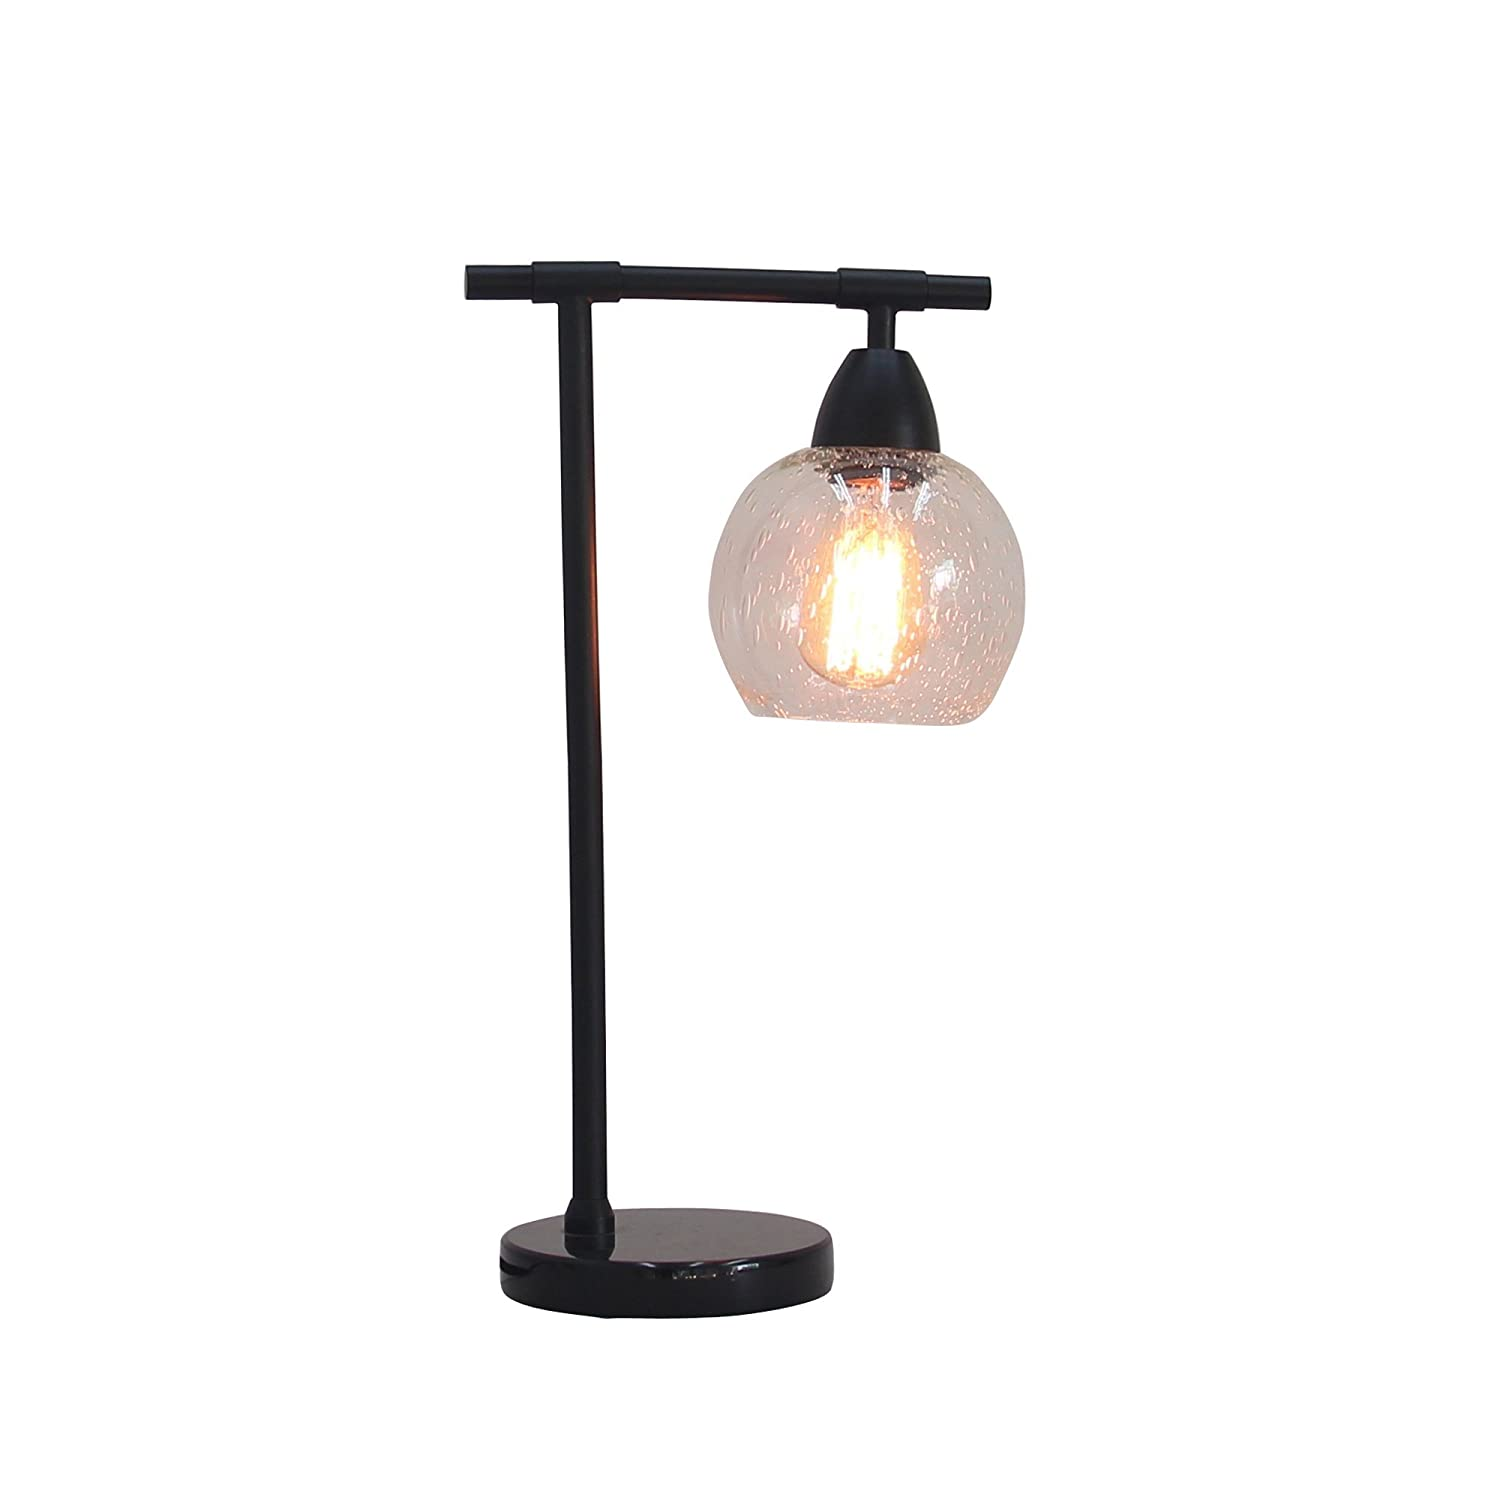 /& Clear Glass Marble Cory Martin W-1560BLK Table Lamp 18 Metal//Black